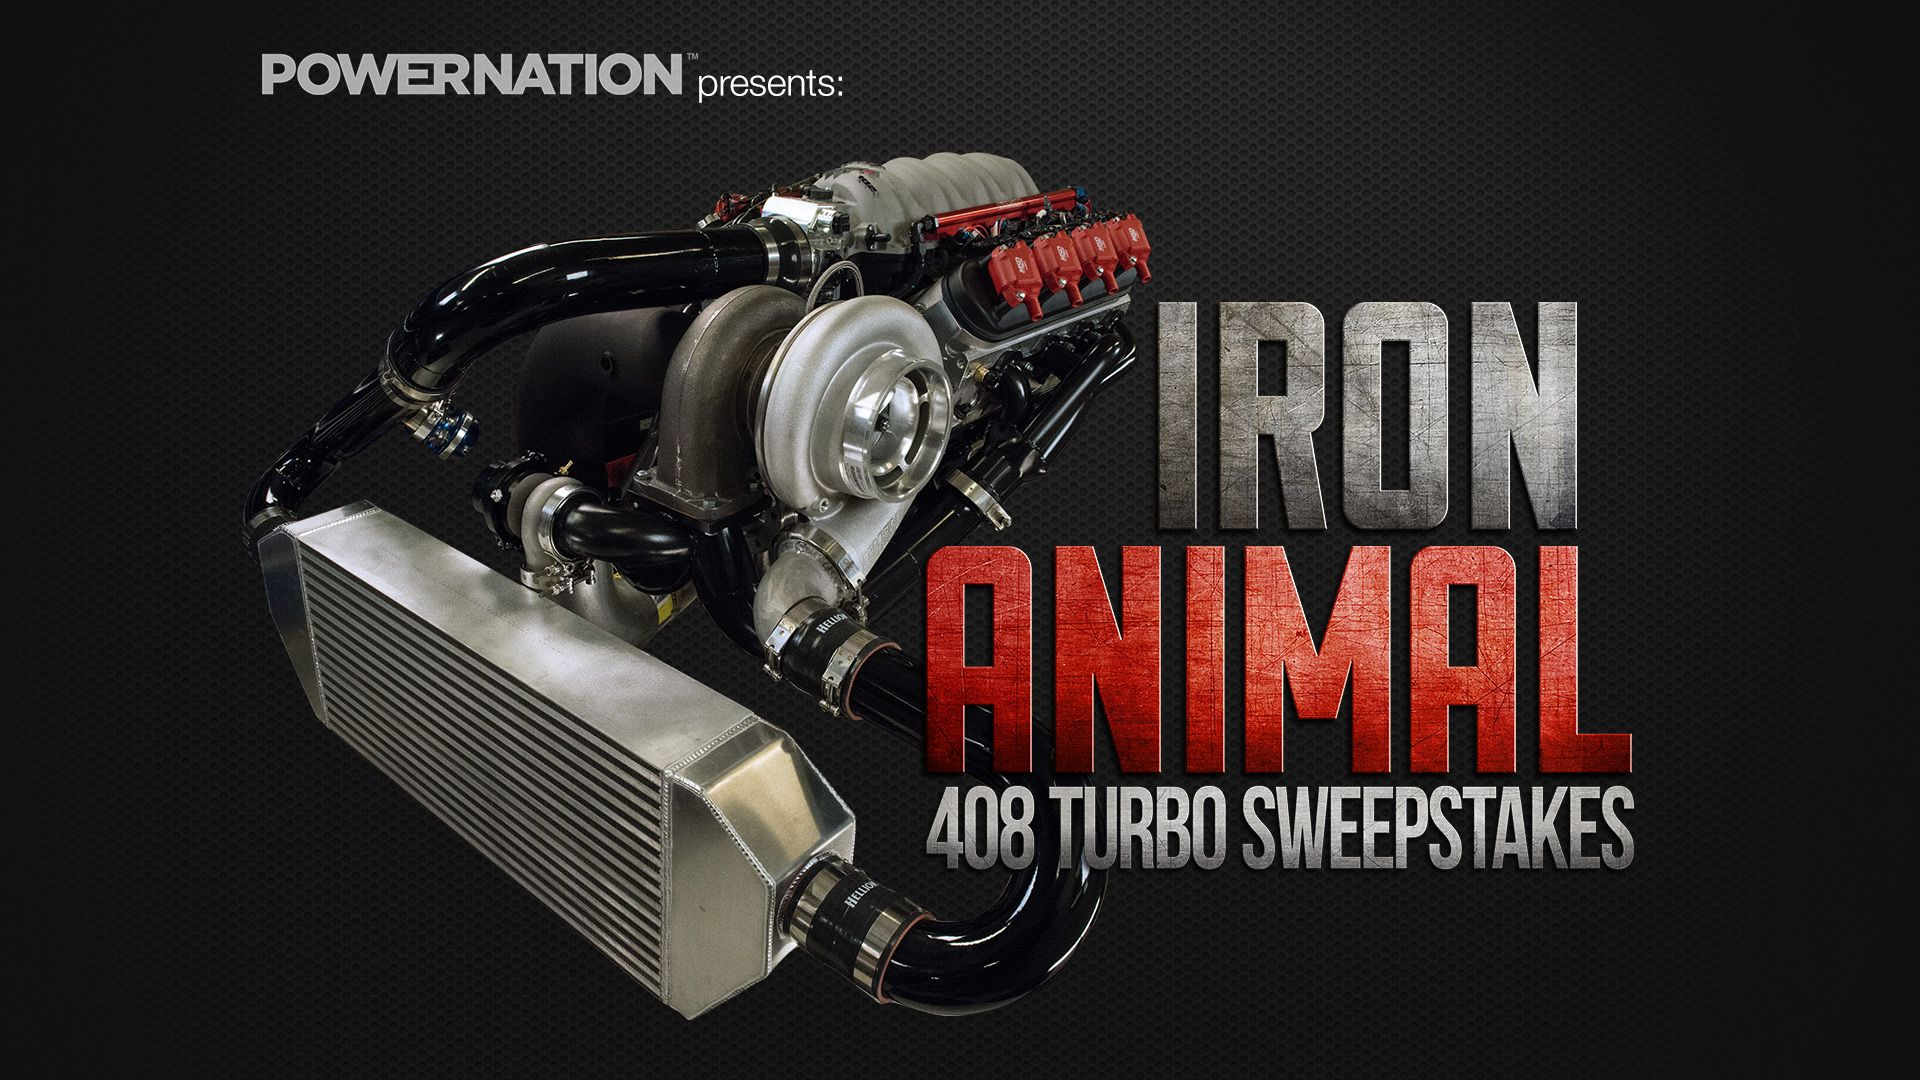 I just entered The Iron Animal 408 Turbo Giveaway! Click the link if